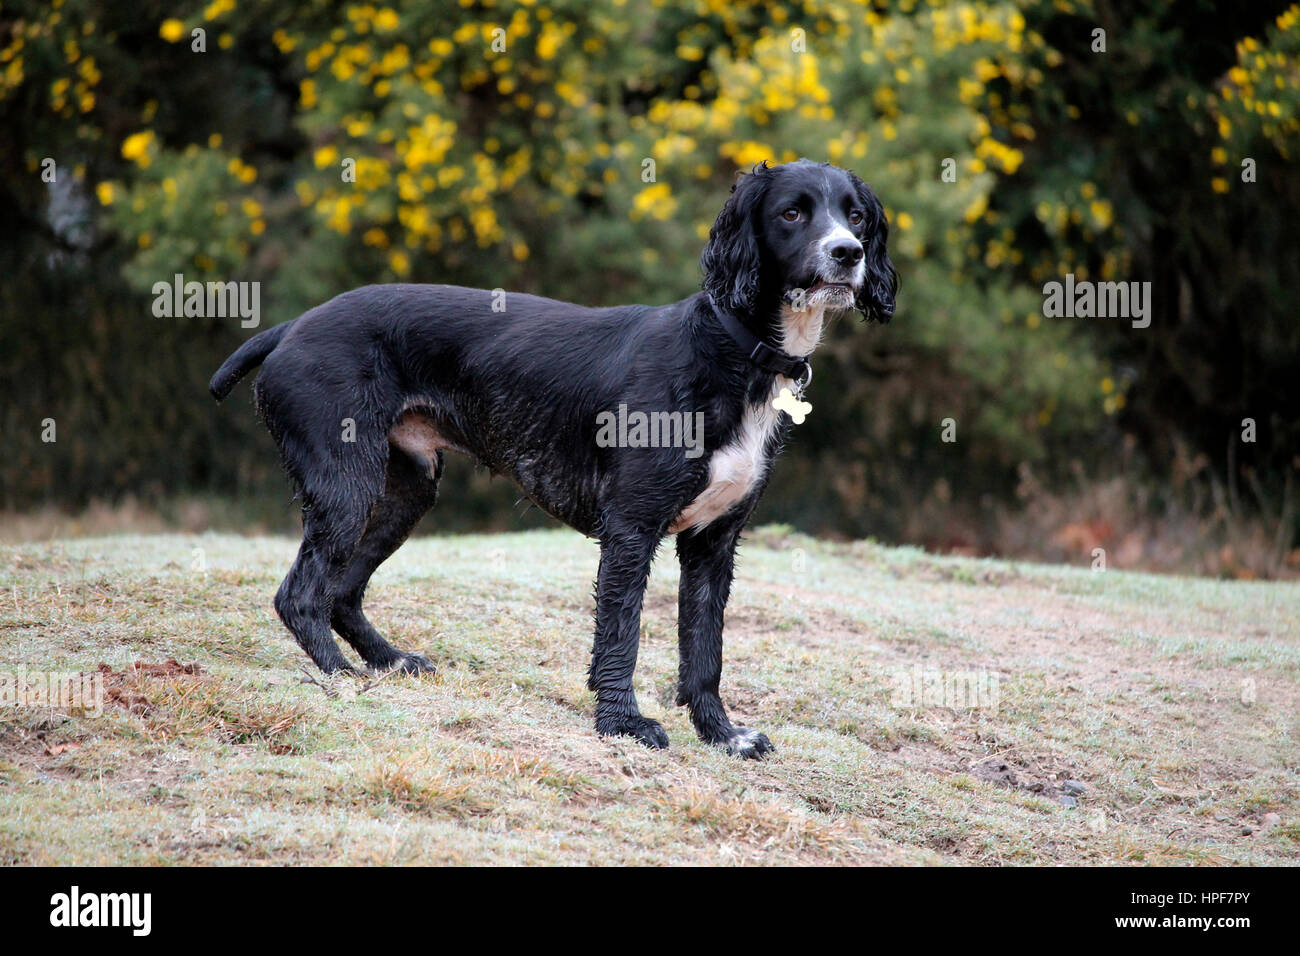 Black and white dog in a field - Stock Image